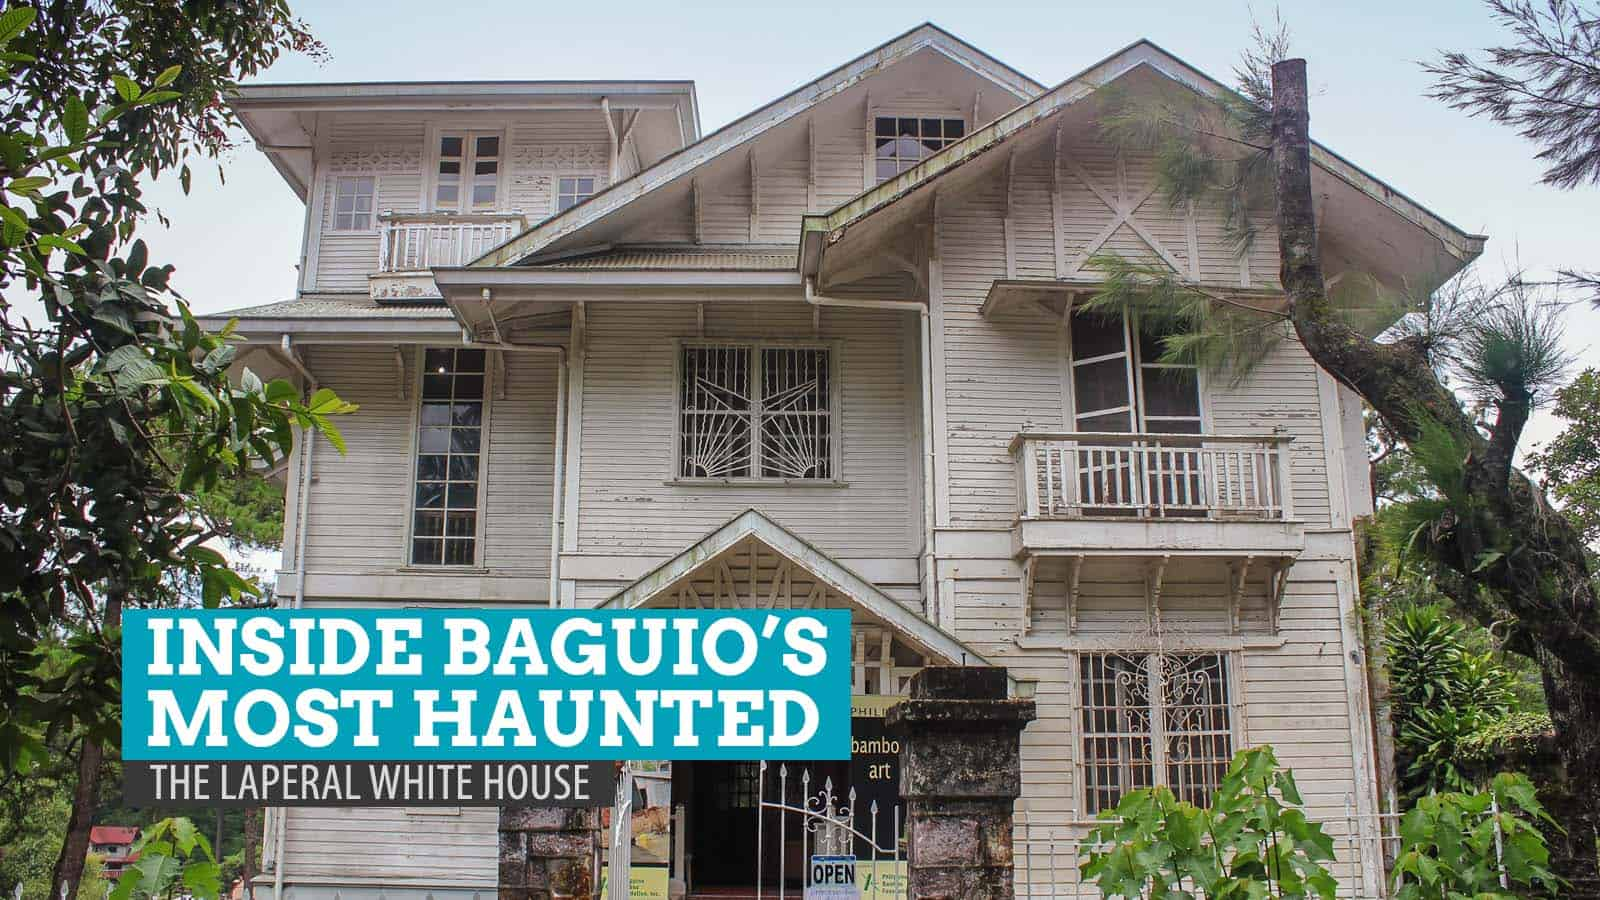 Inside Baguio's Most Haunted: The Laperal White House